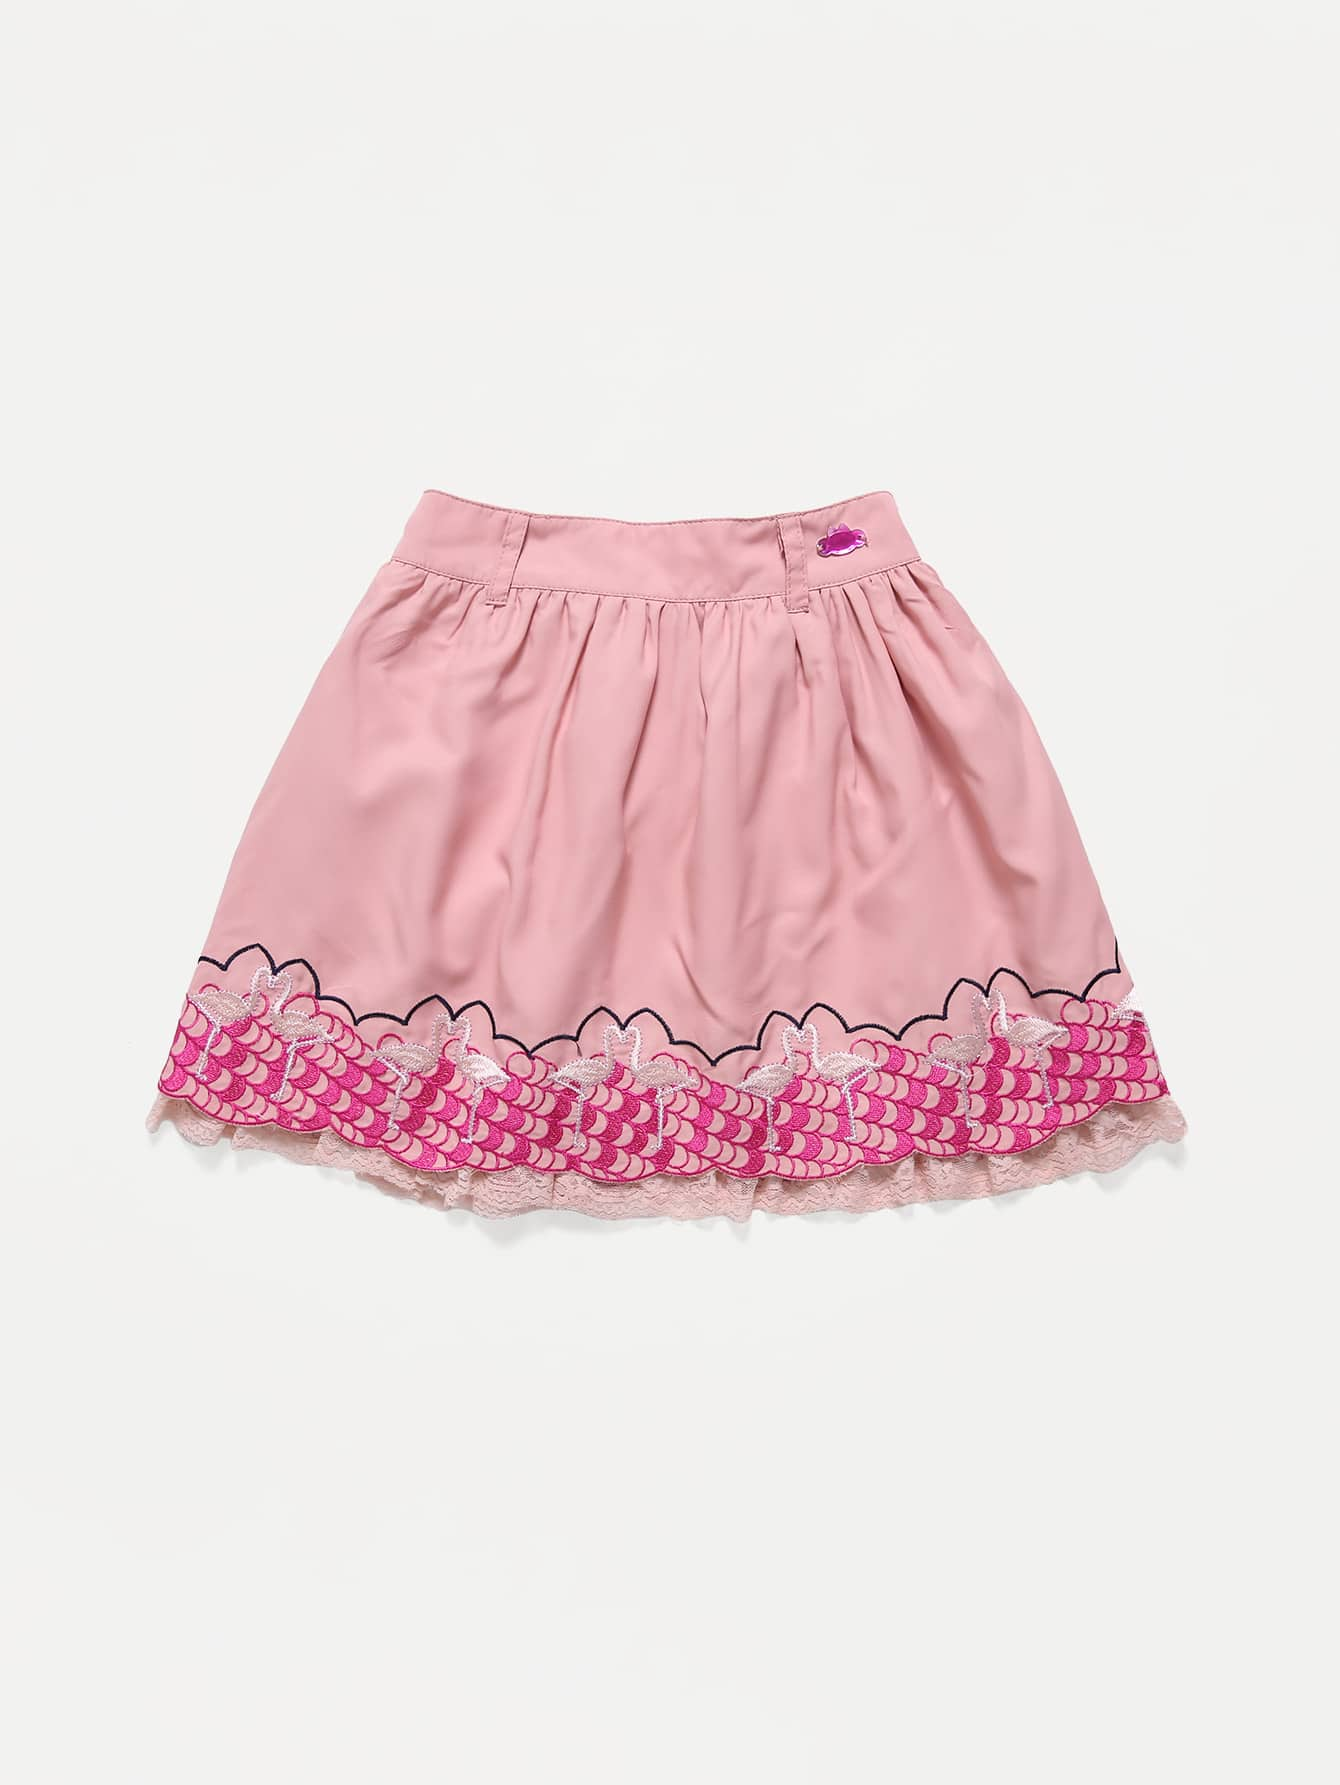 Toddler Girls Flamingo Embroidered Lace Trim Skirt Toddler Girls Flamingo Embroidered Lace Trim Skirt